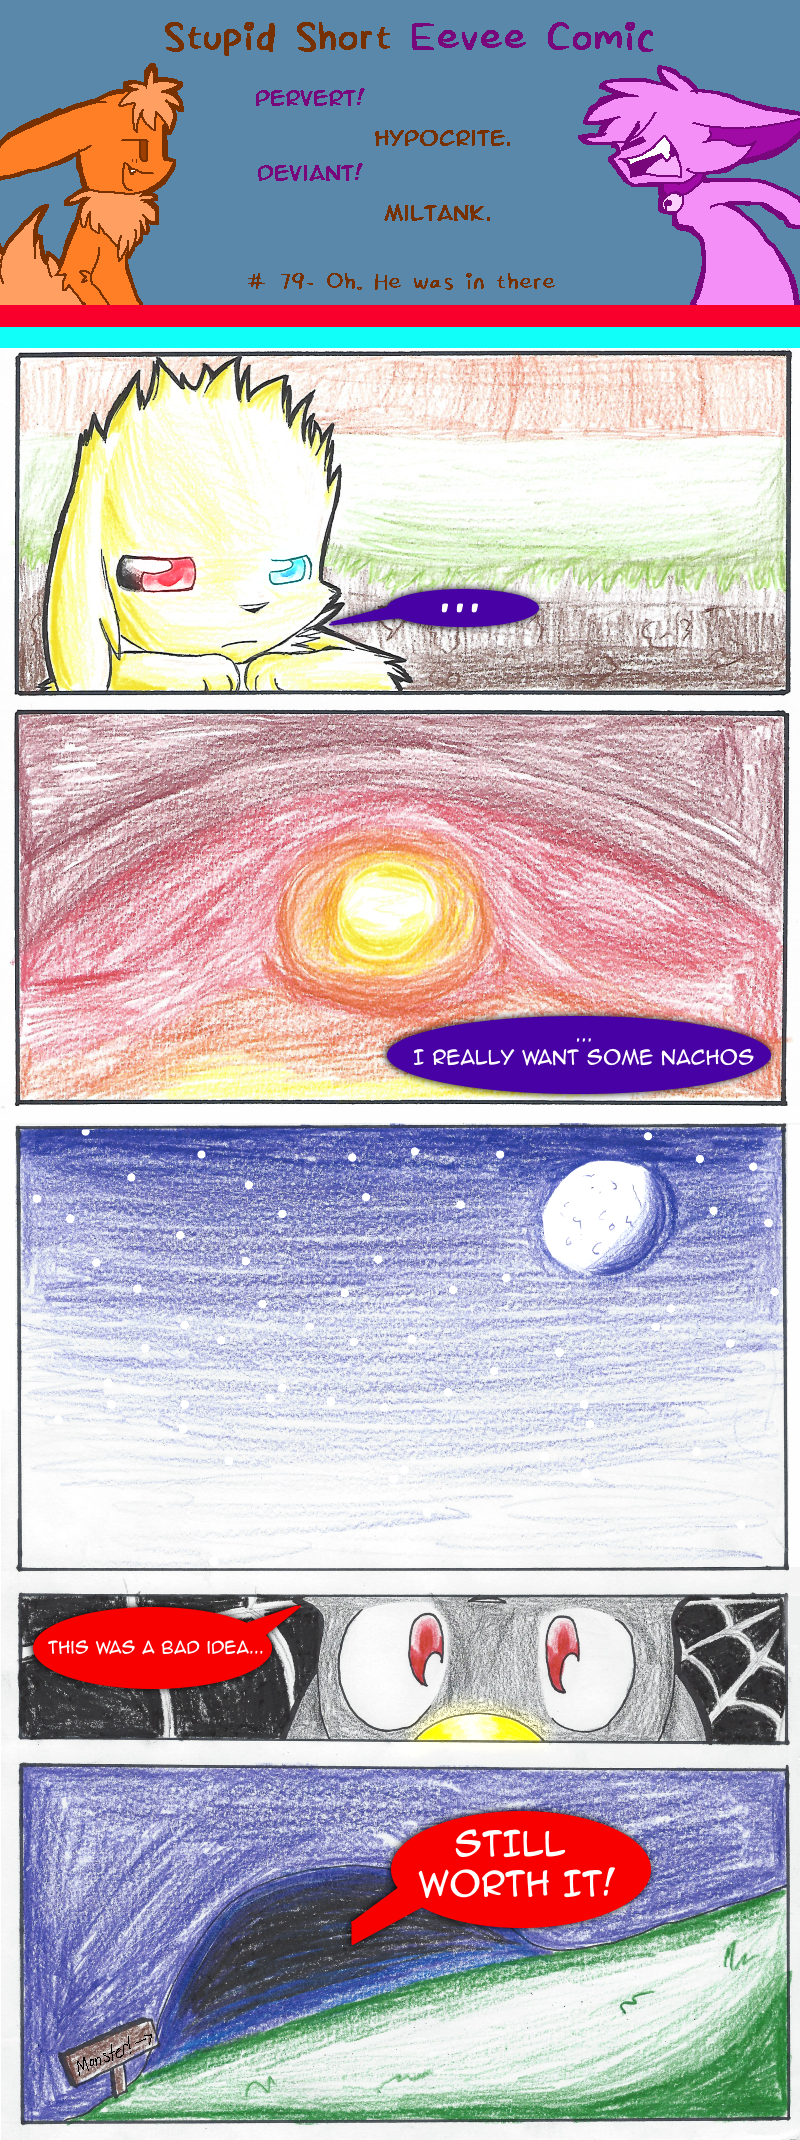 Next comic is a meanwhile!